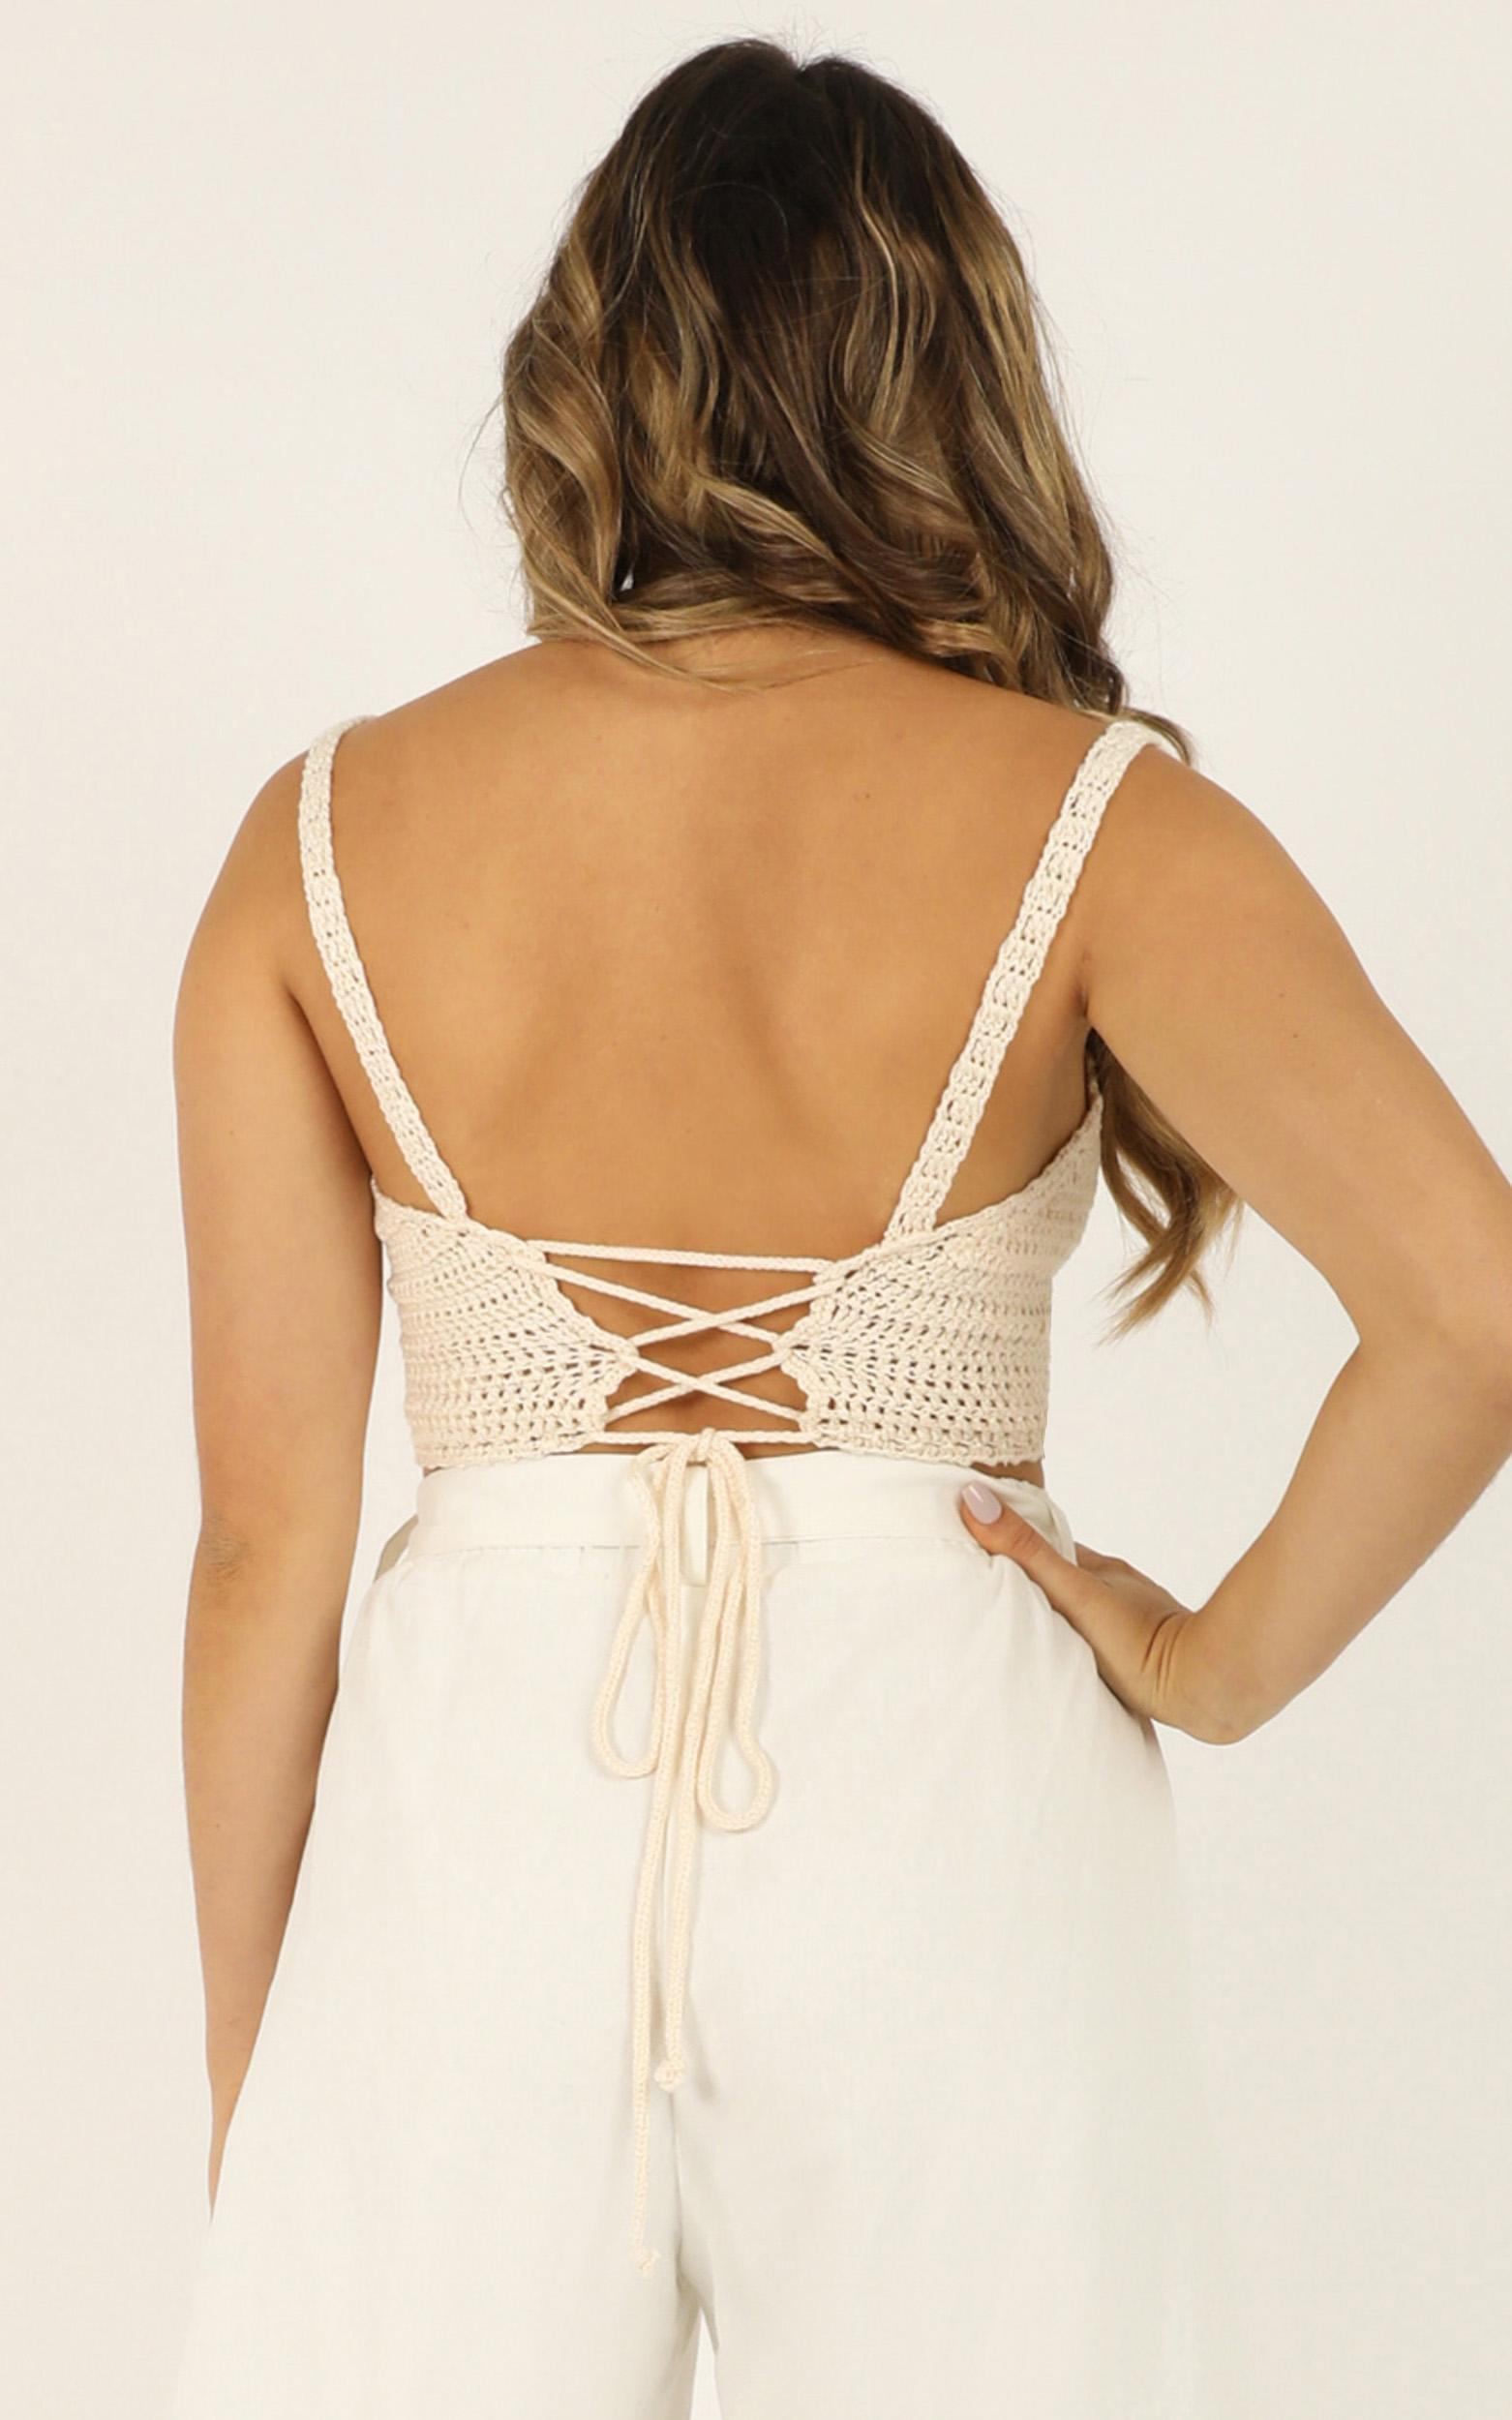 Radiance Knit Top in cream - 18 (XXXL), Cream, hi-res image number null